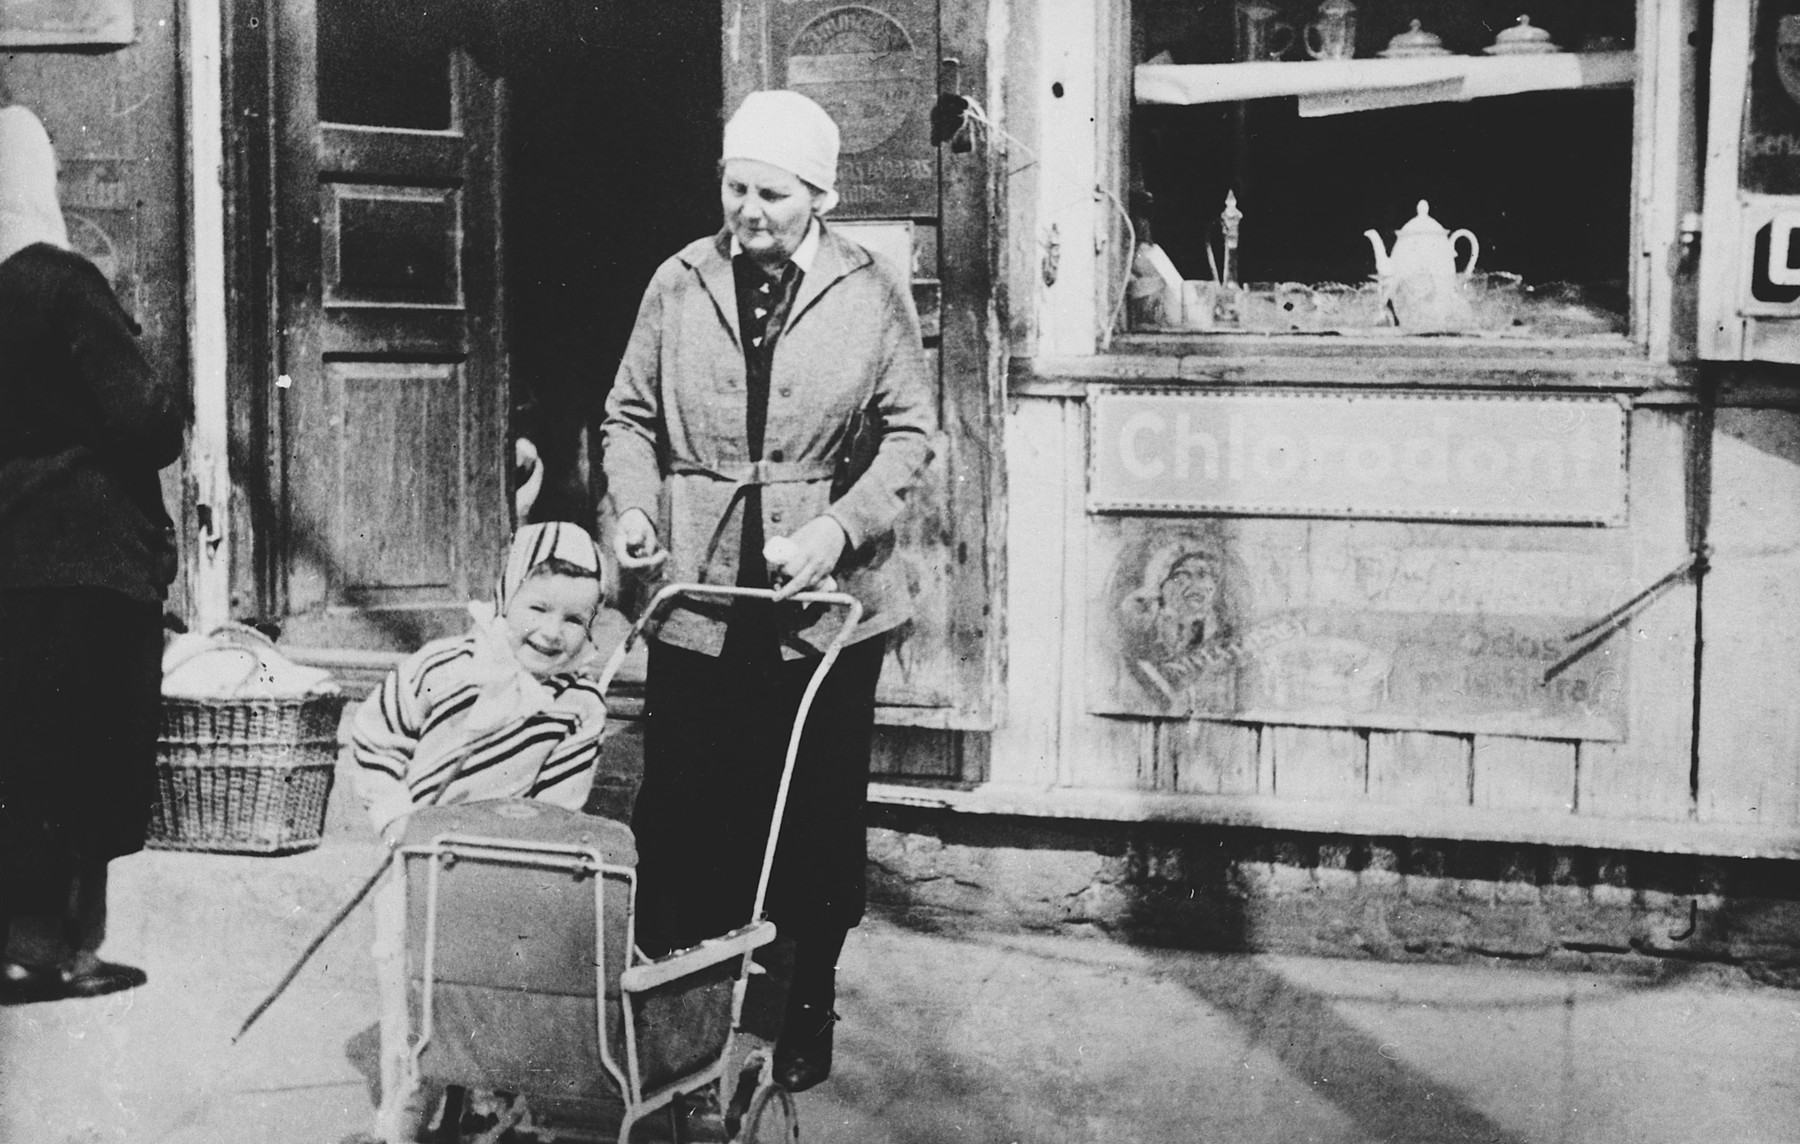 A Jewish toddler stands next to his stroller alongside his Lithuanian nanny.  Pictured is Alik Shtromas and his nanny, Vera.